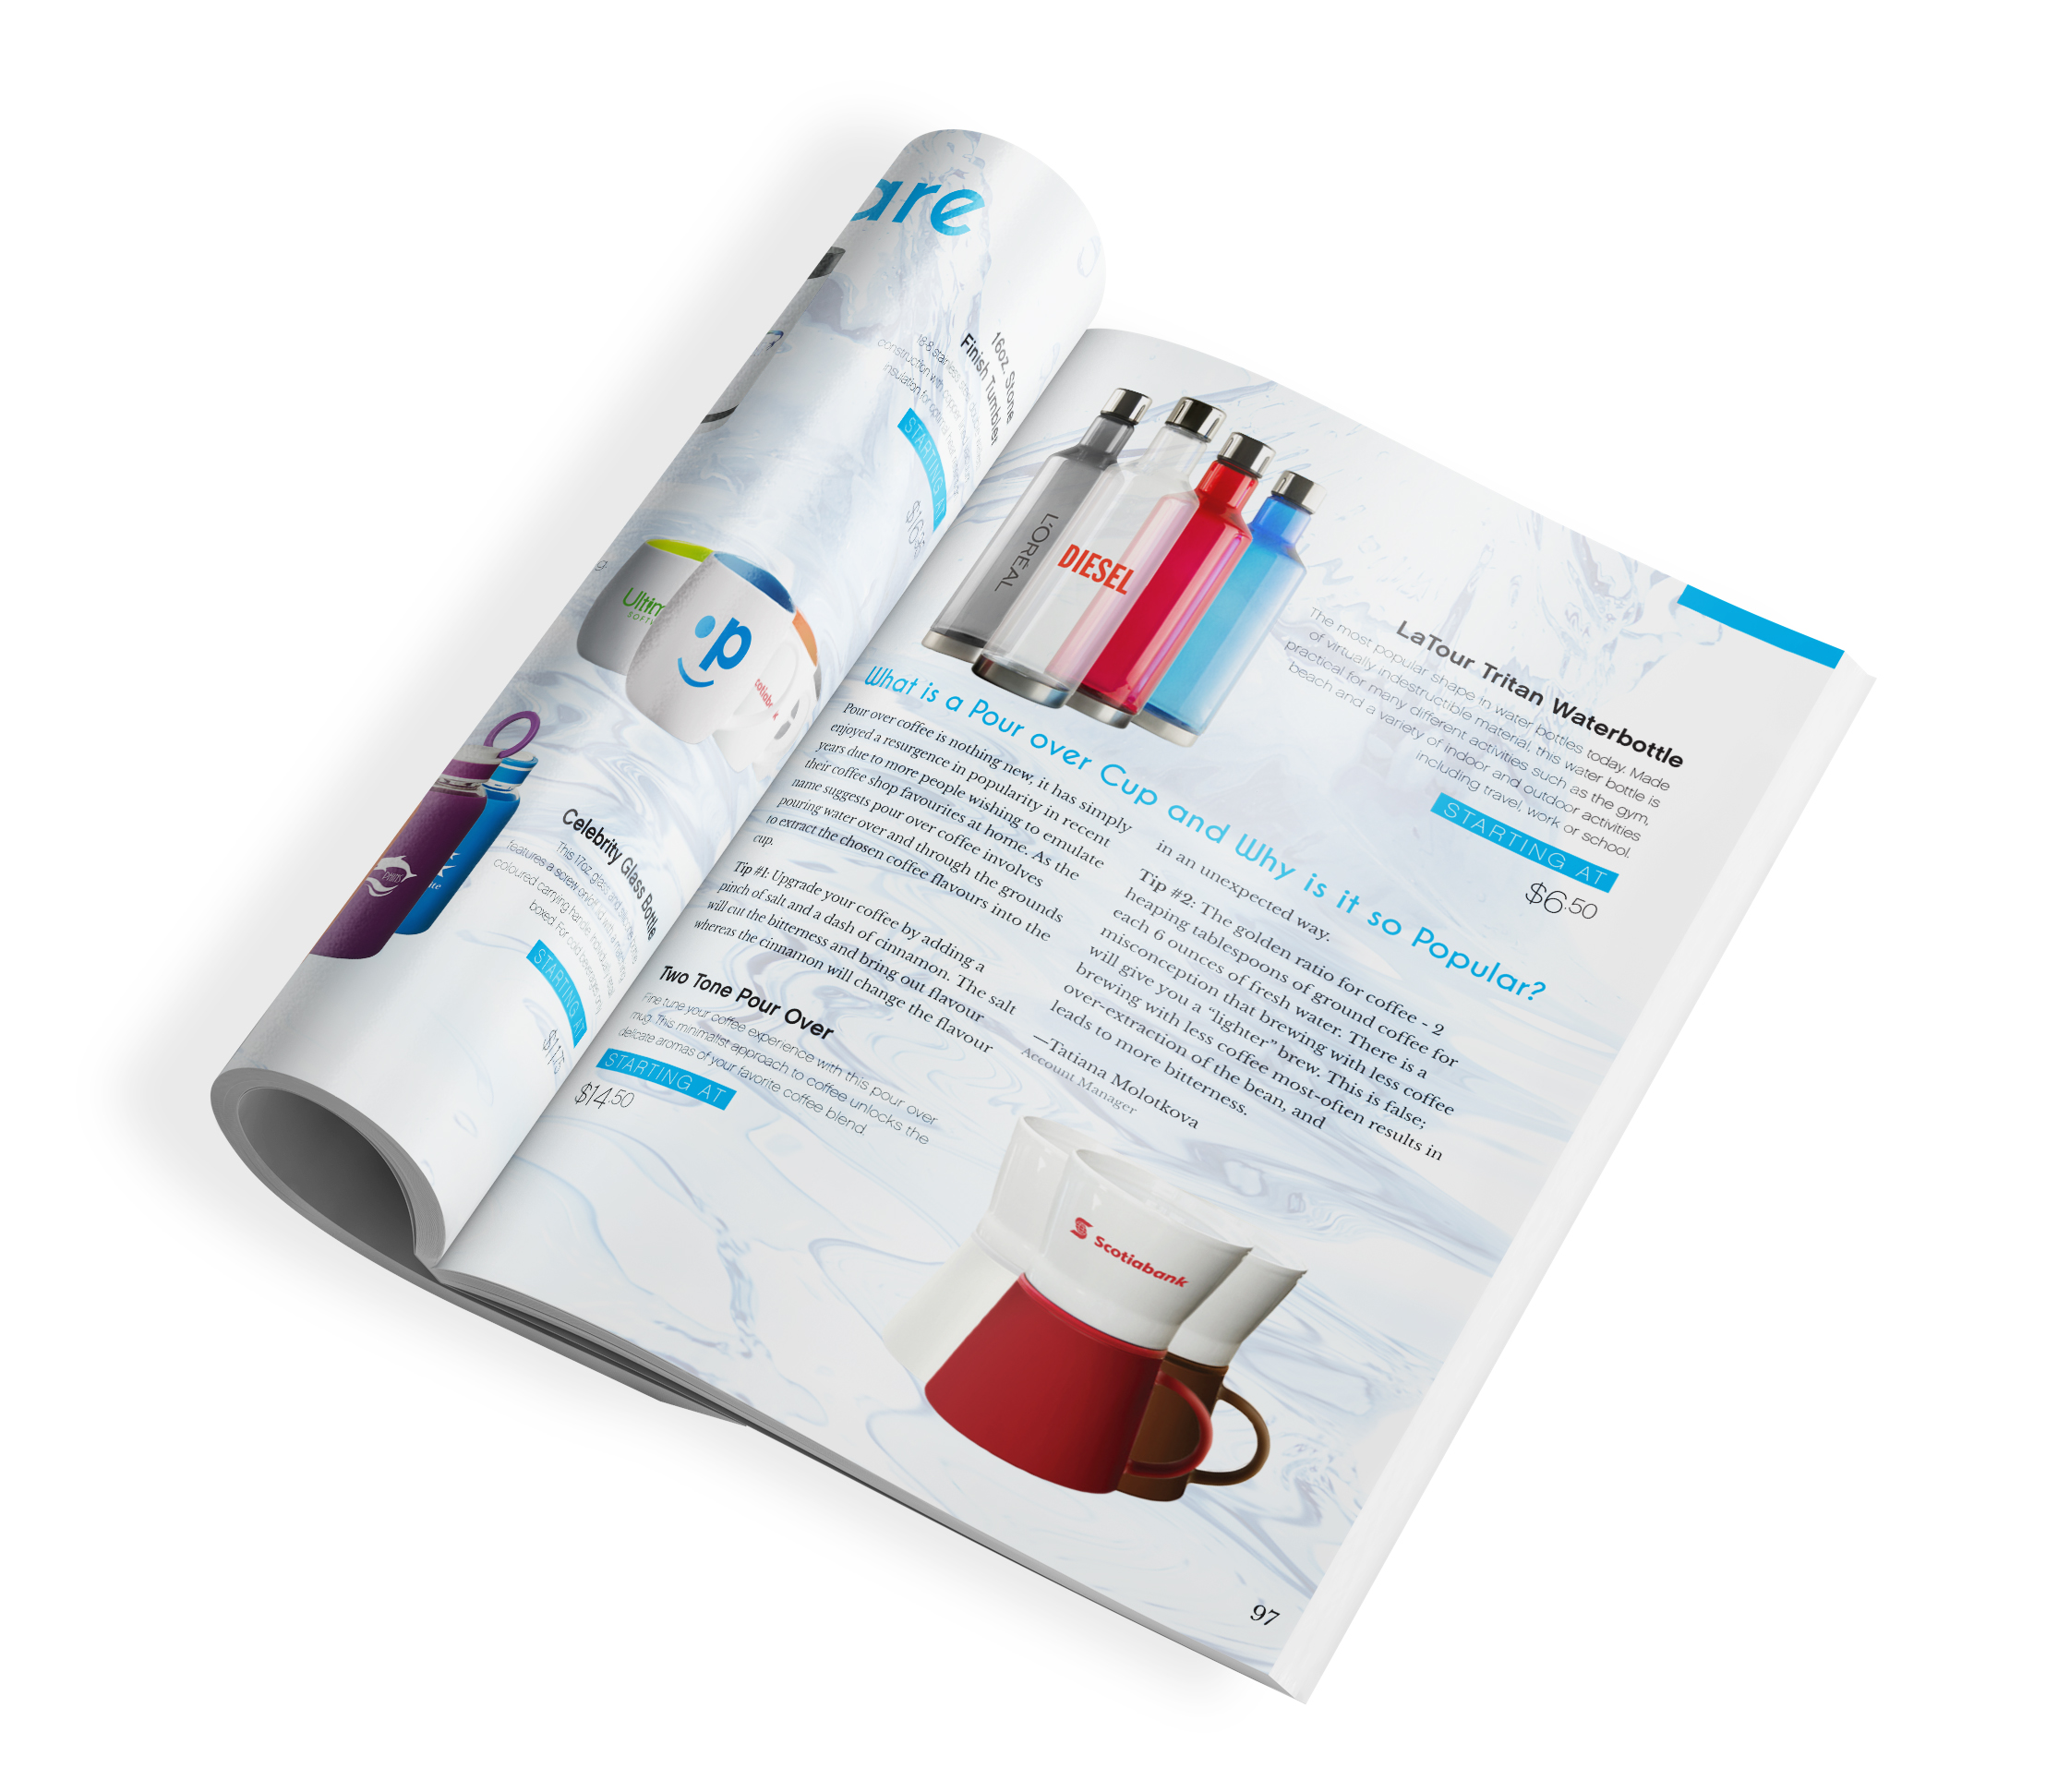 Drinkware Spread in Score's Catalogue